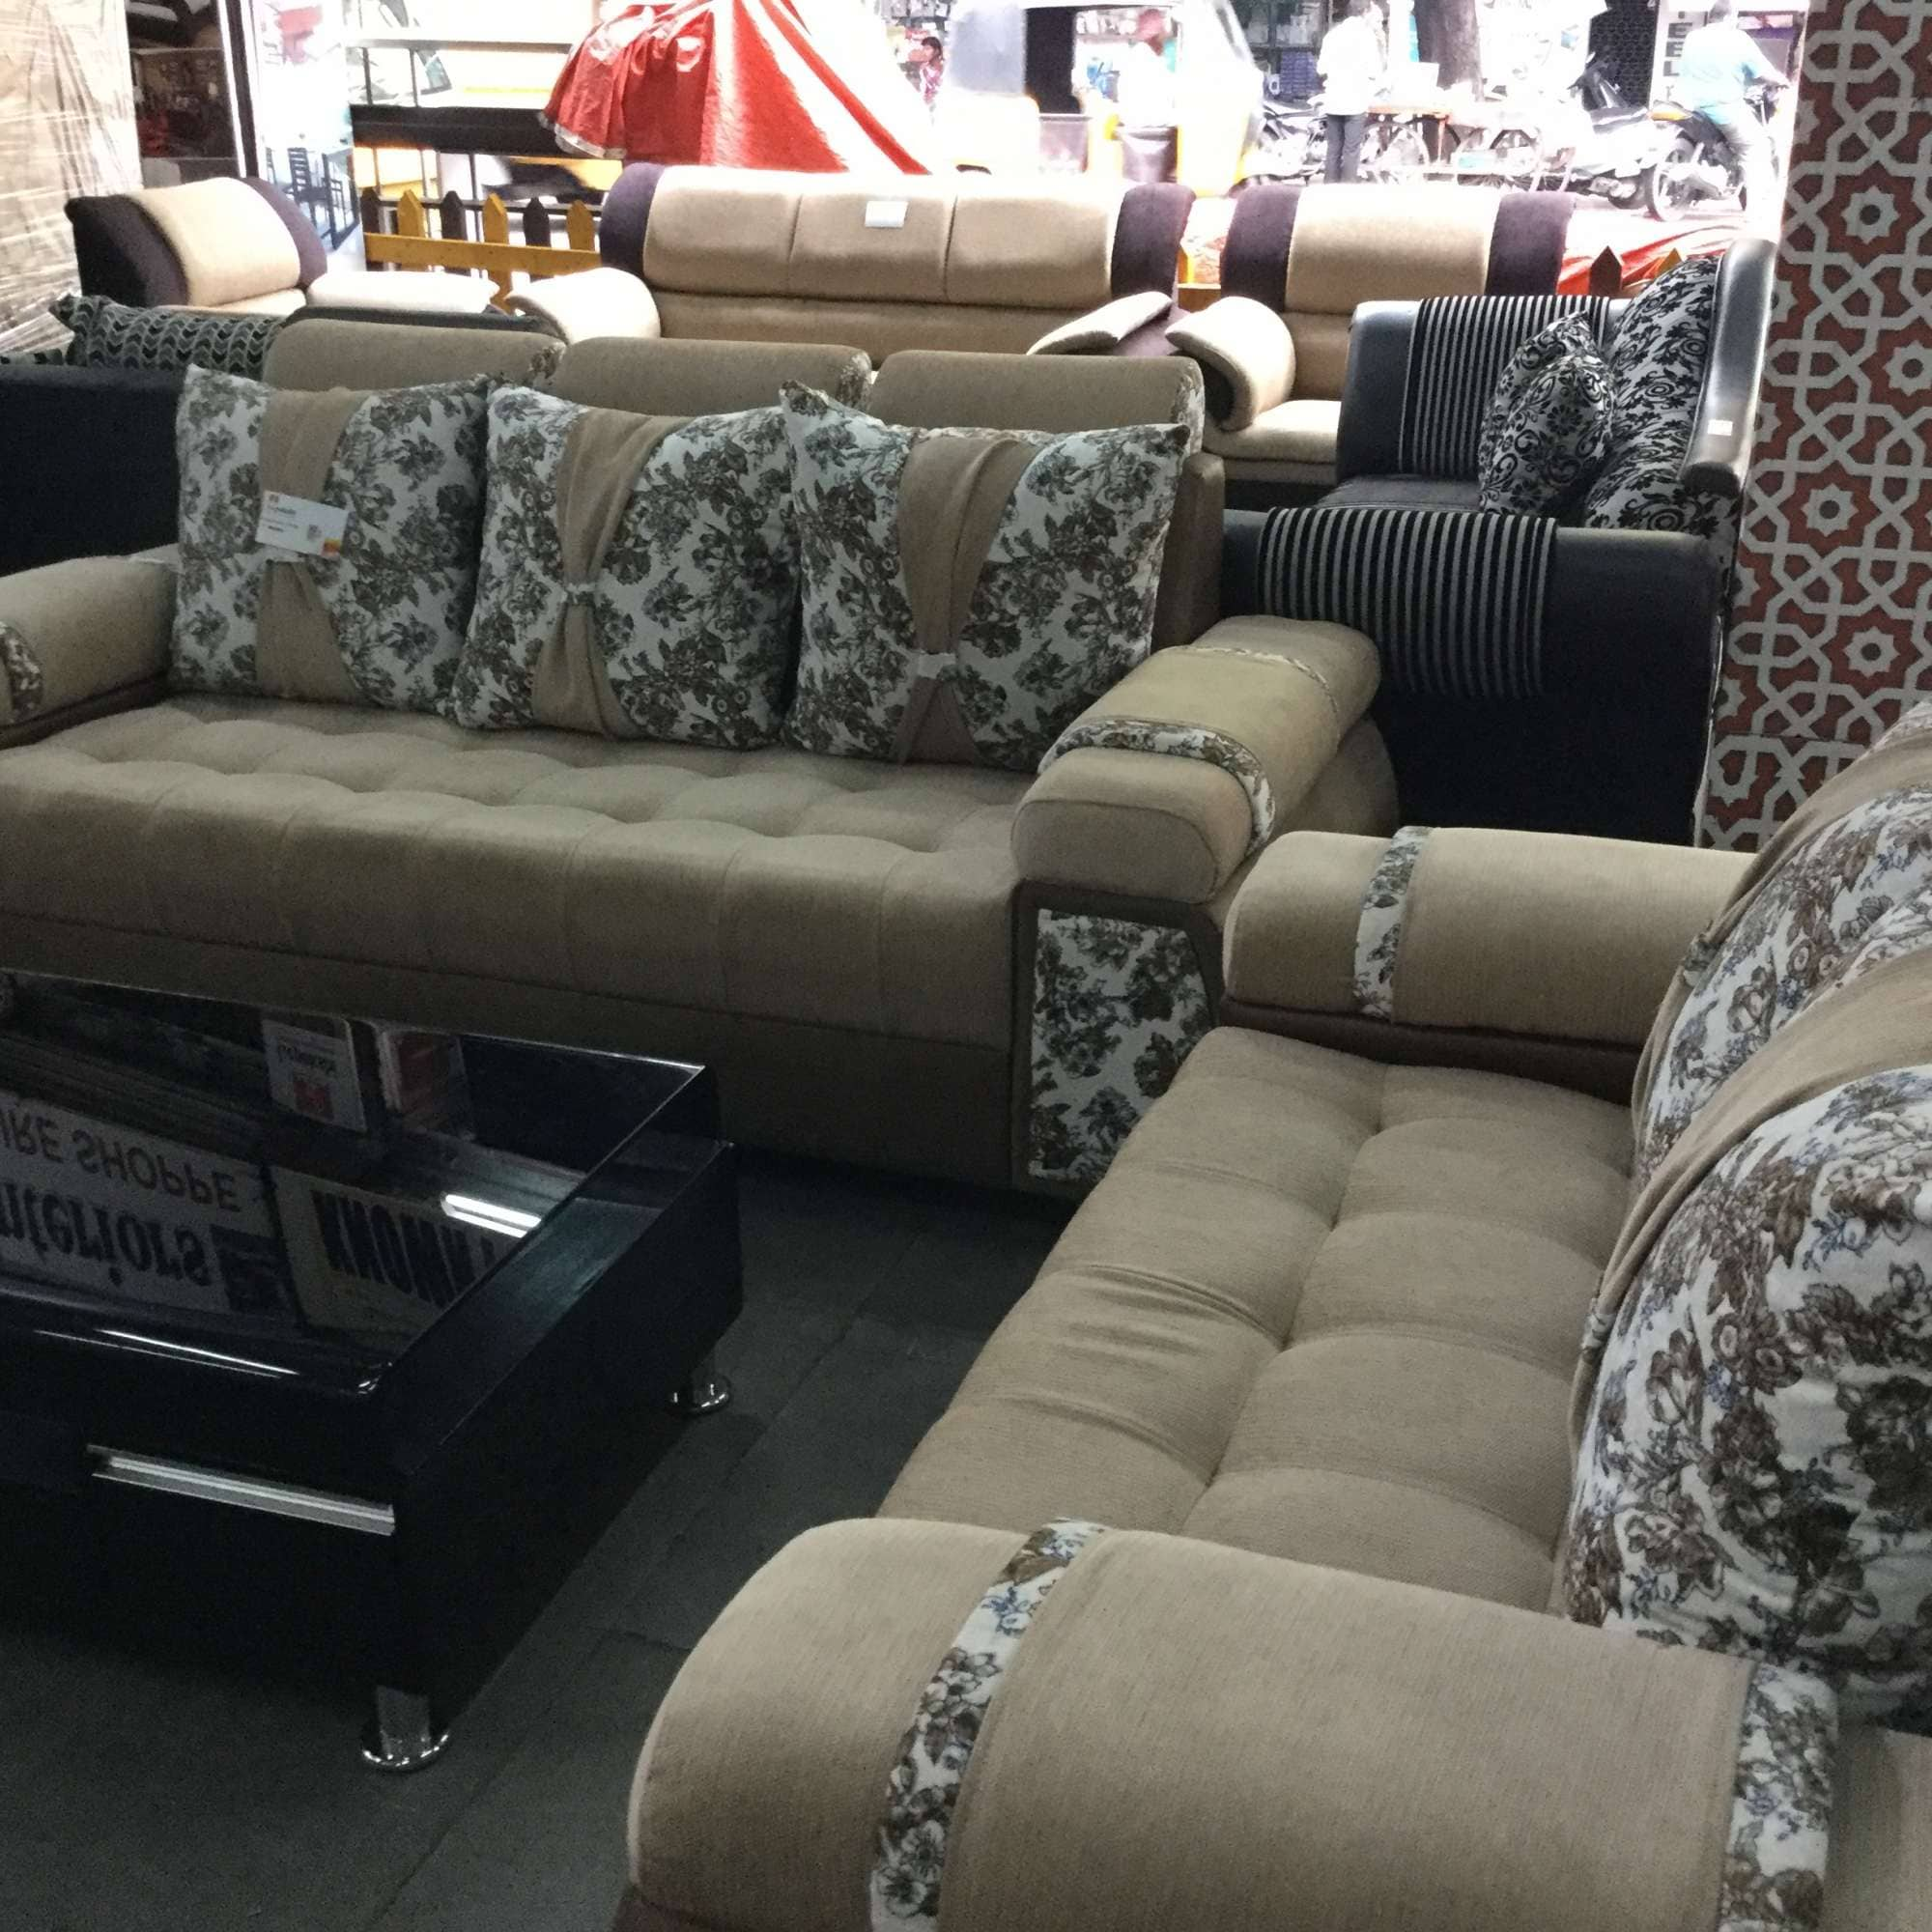 Swell City Furniture Nampally Furniture Dealers In Hyderabad Beatyapartments Chair Design Images Beatyapartmentscom